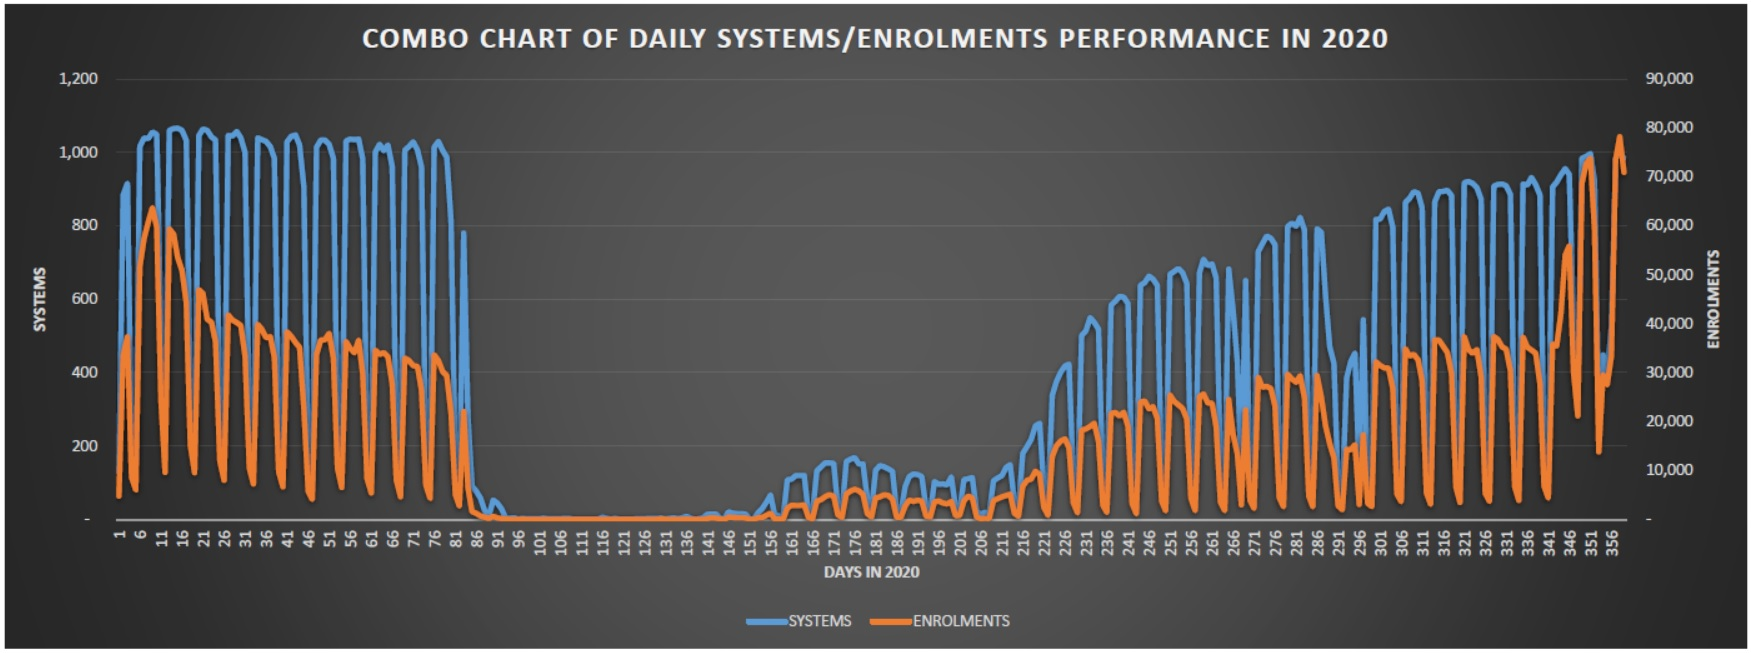 Daily Systems/Enrolment Performance Chart for 2020